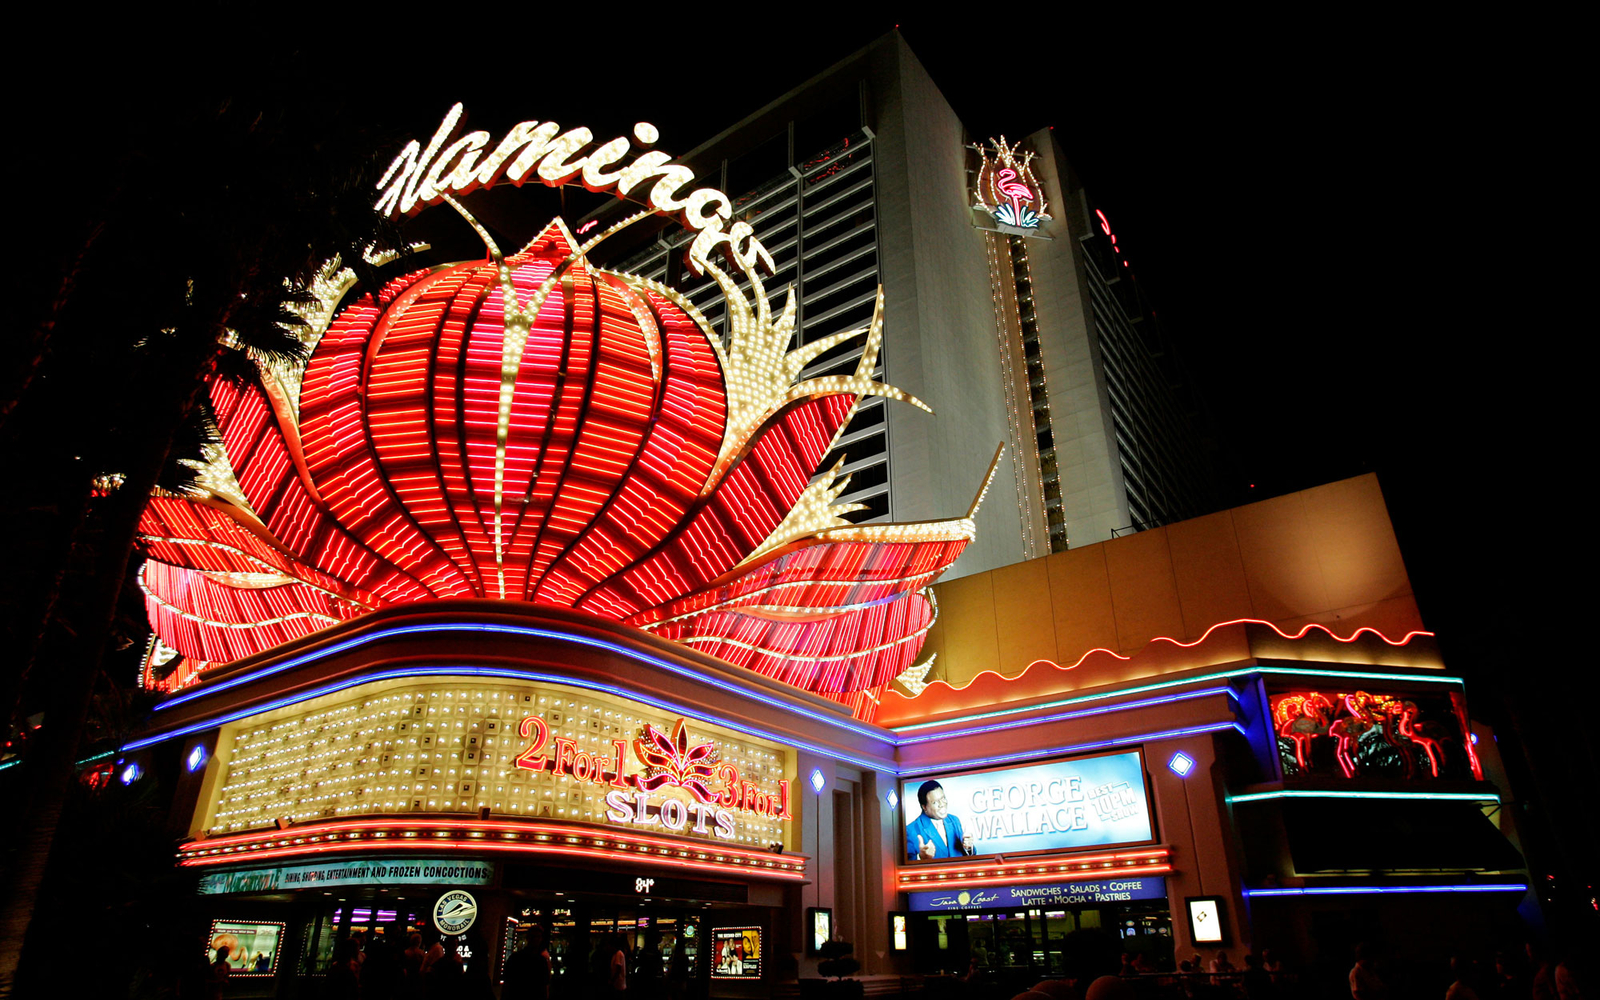 Flamingo Hotel & Casino in Las Vegas, Nevada